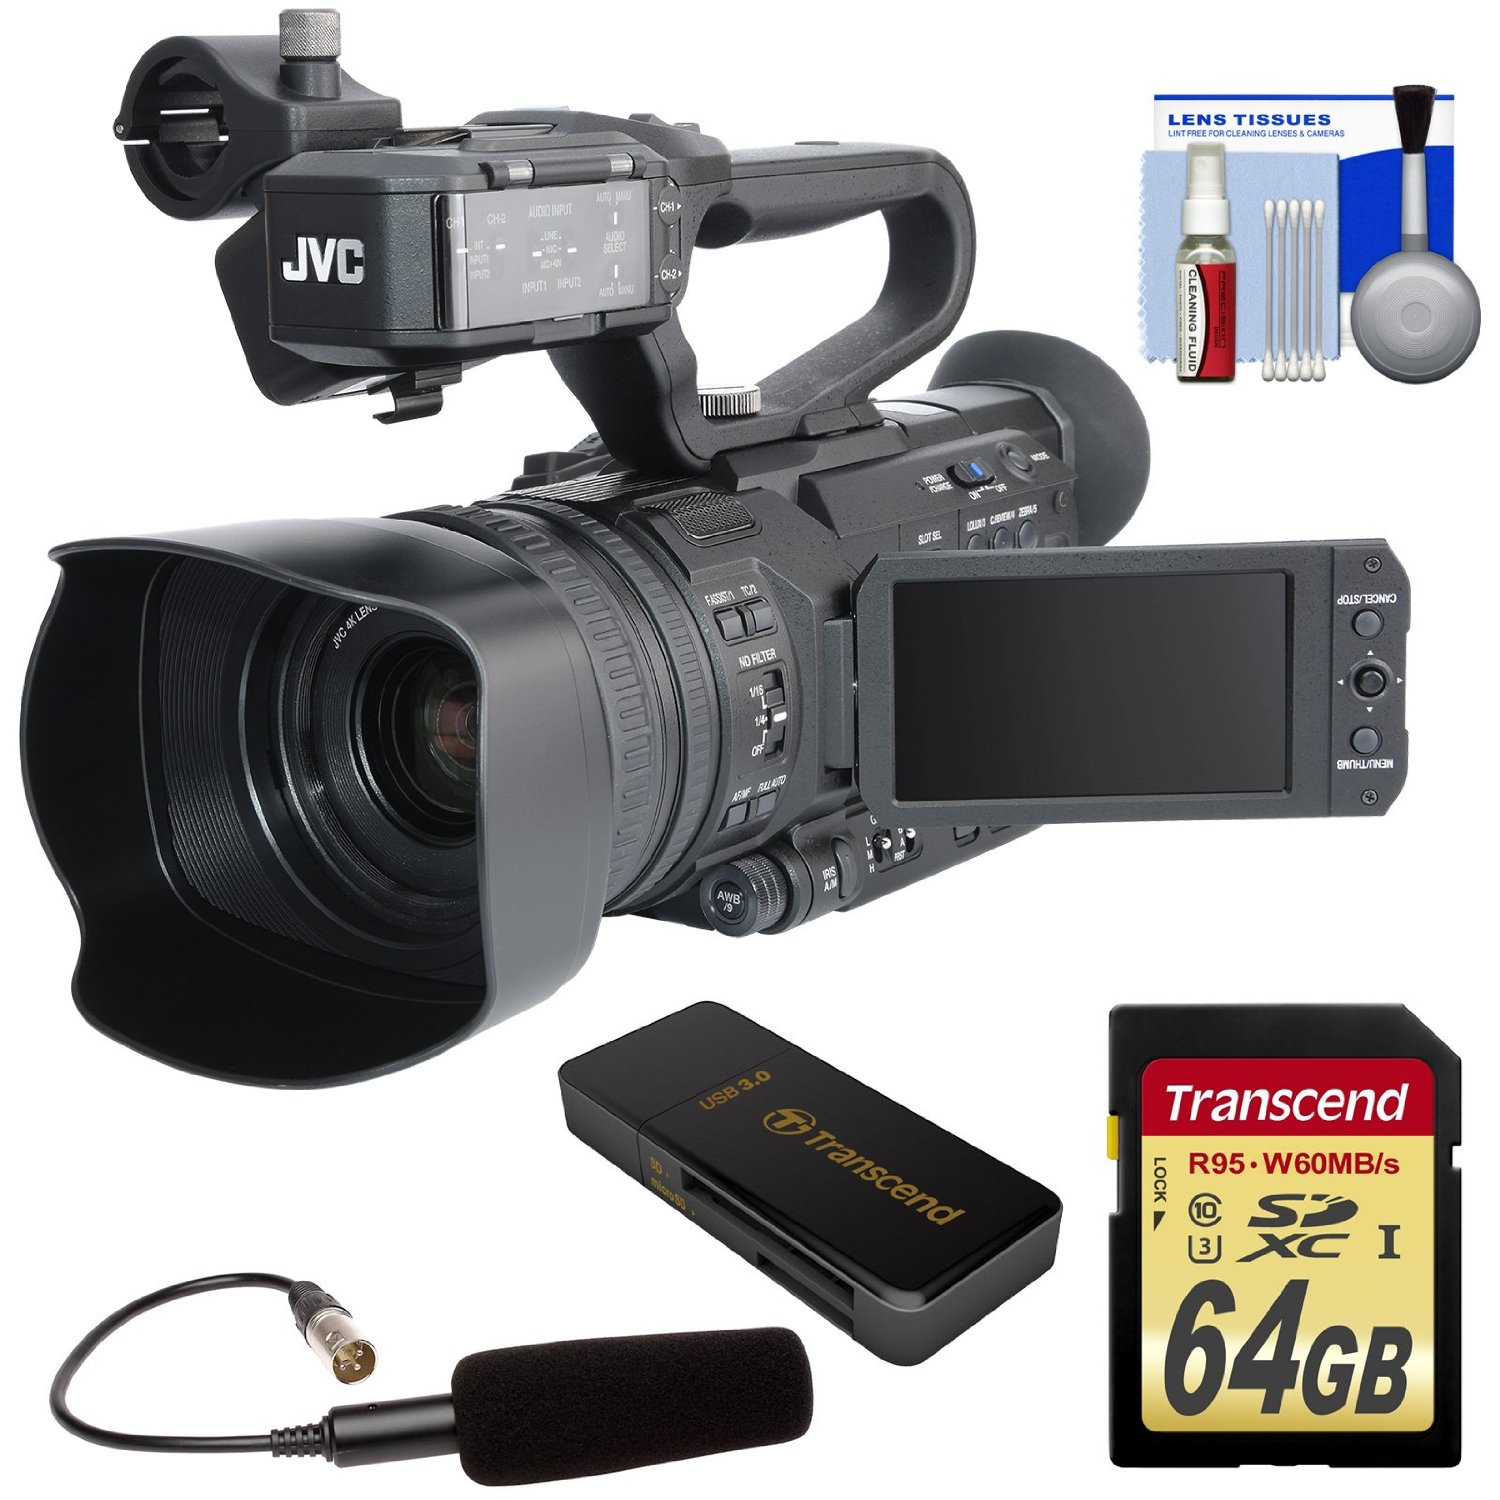 JVC 4KCam Compact Handheld Camcorder